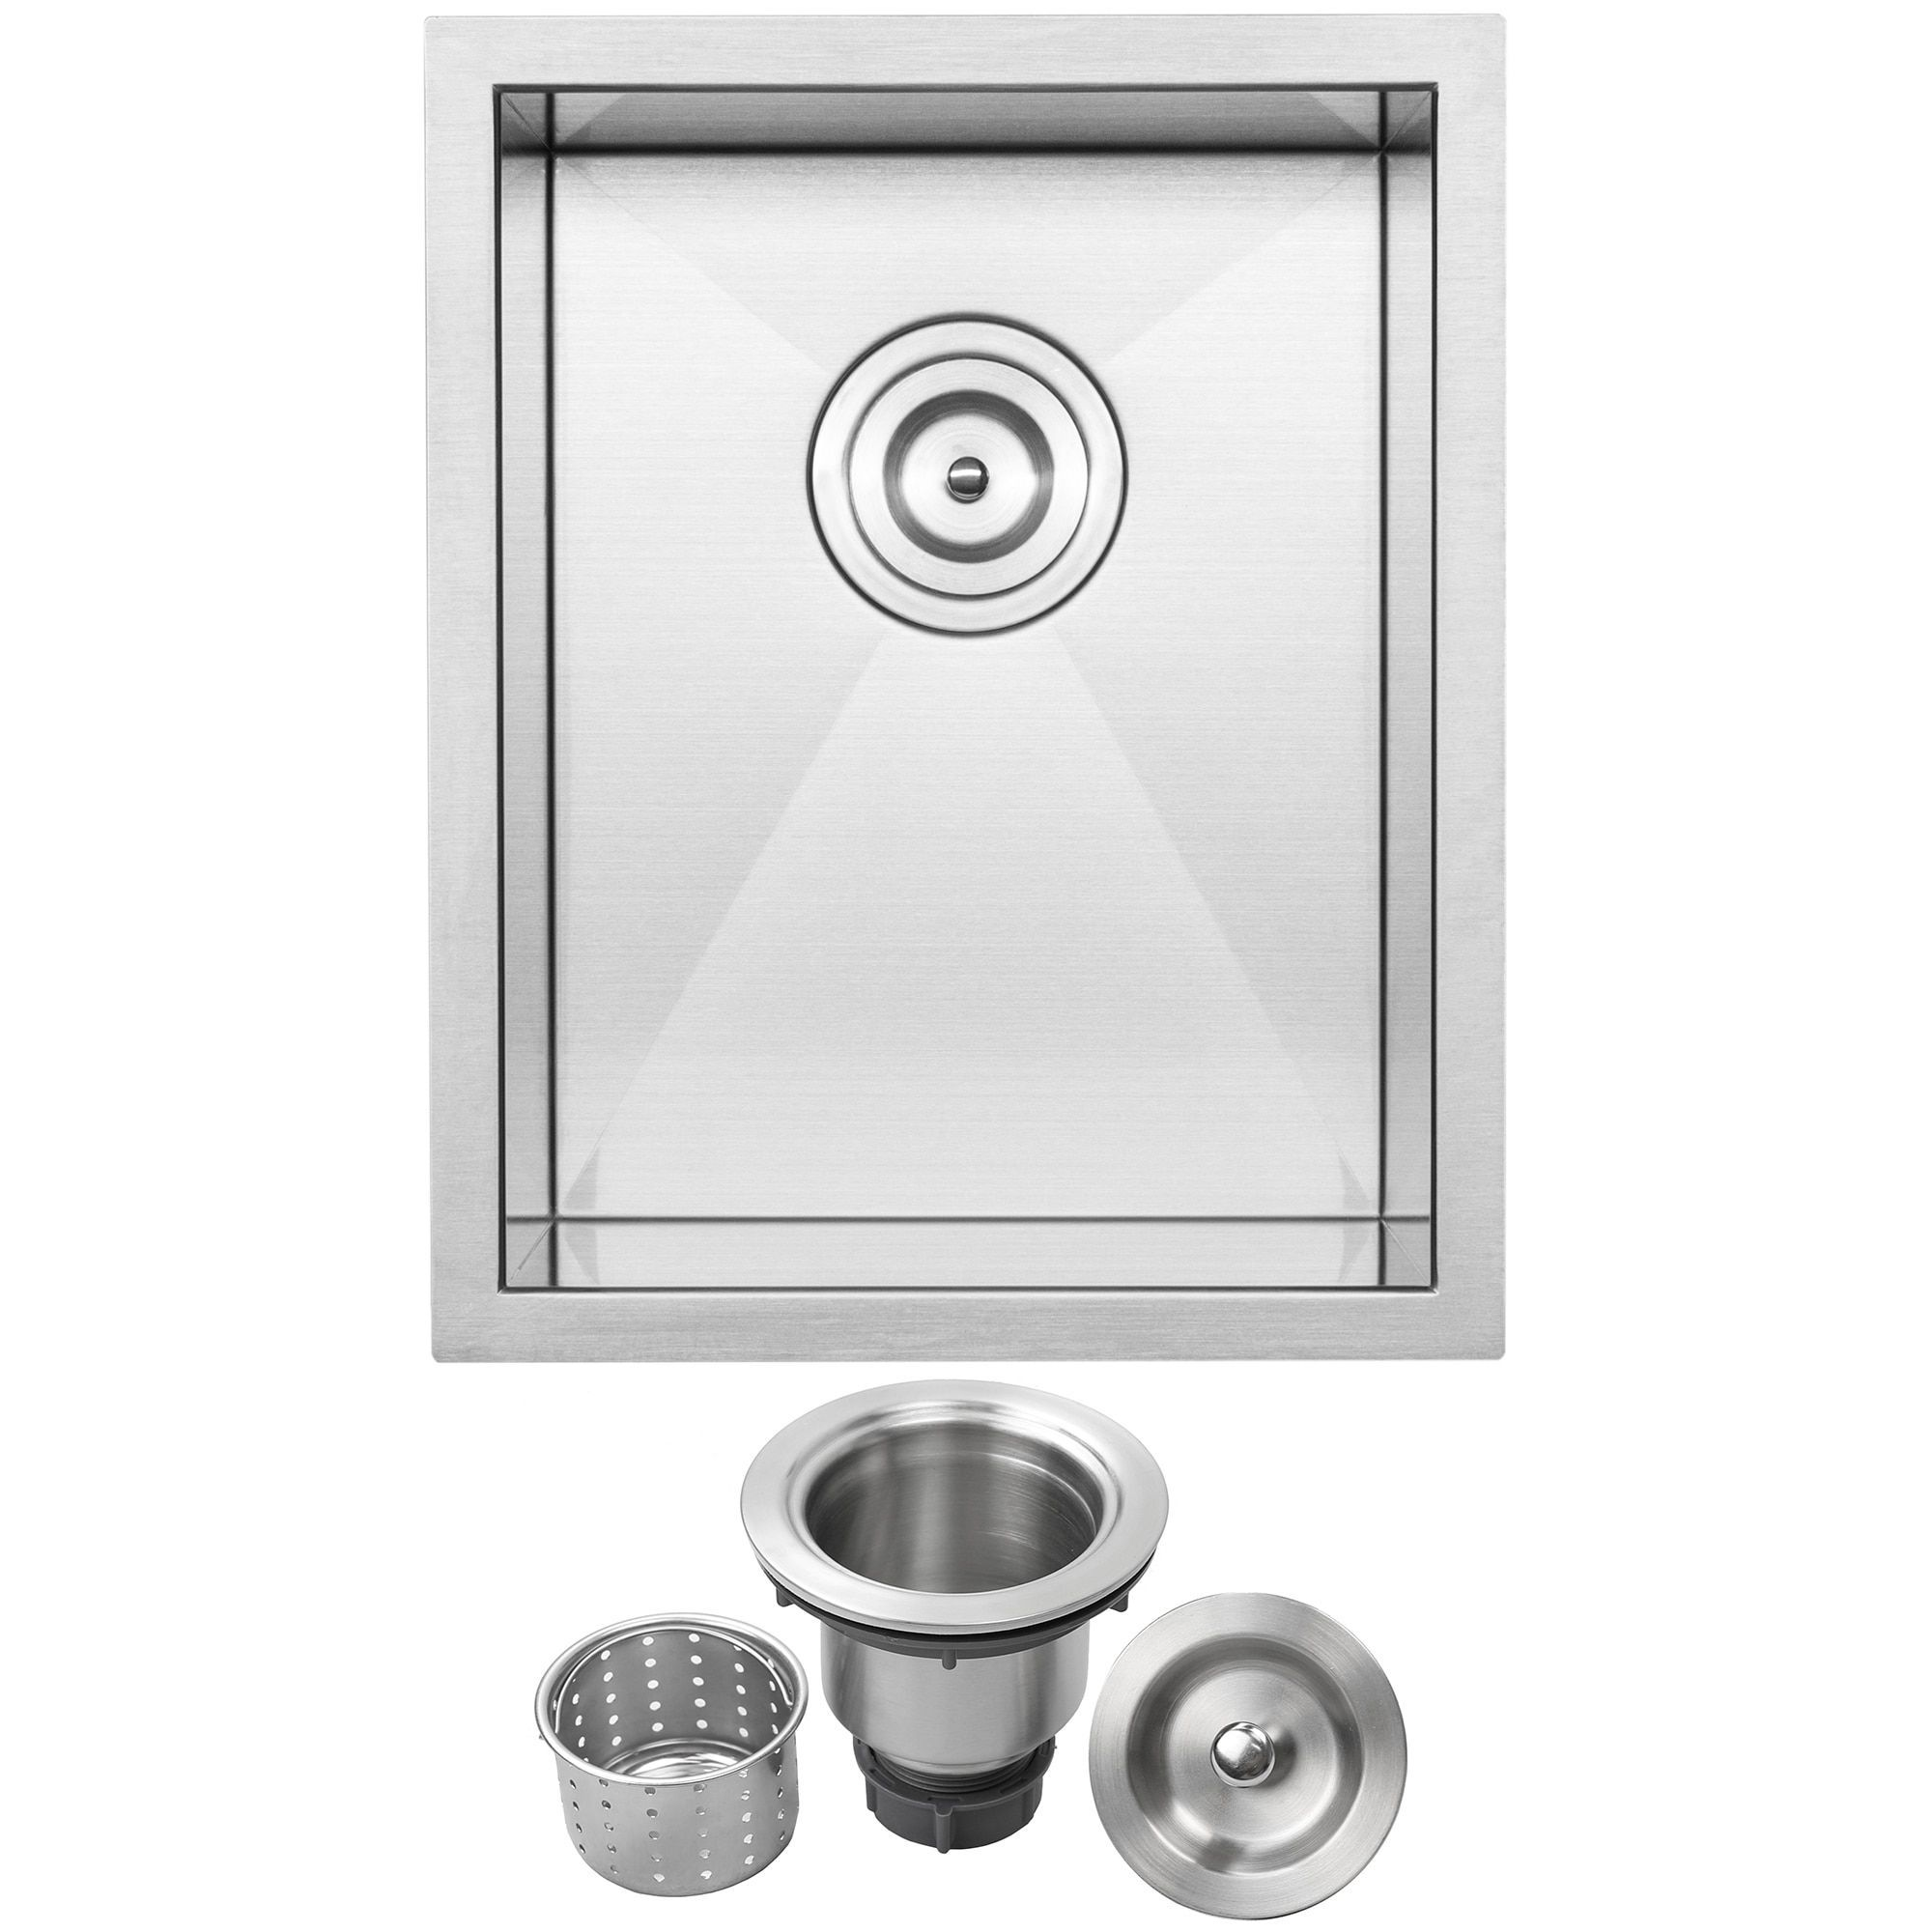 12 Ticor S3610 Pacific Series 16 Gauge Stainless Steel Undermount Single Basin Zero Radius Kitchen And Bar Sink Bar Sink Stainless Steel Bar Brushed Stainless Steel